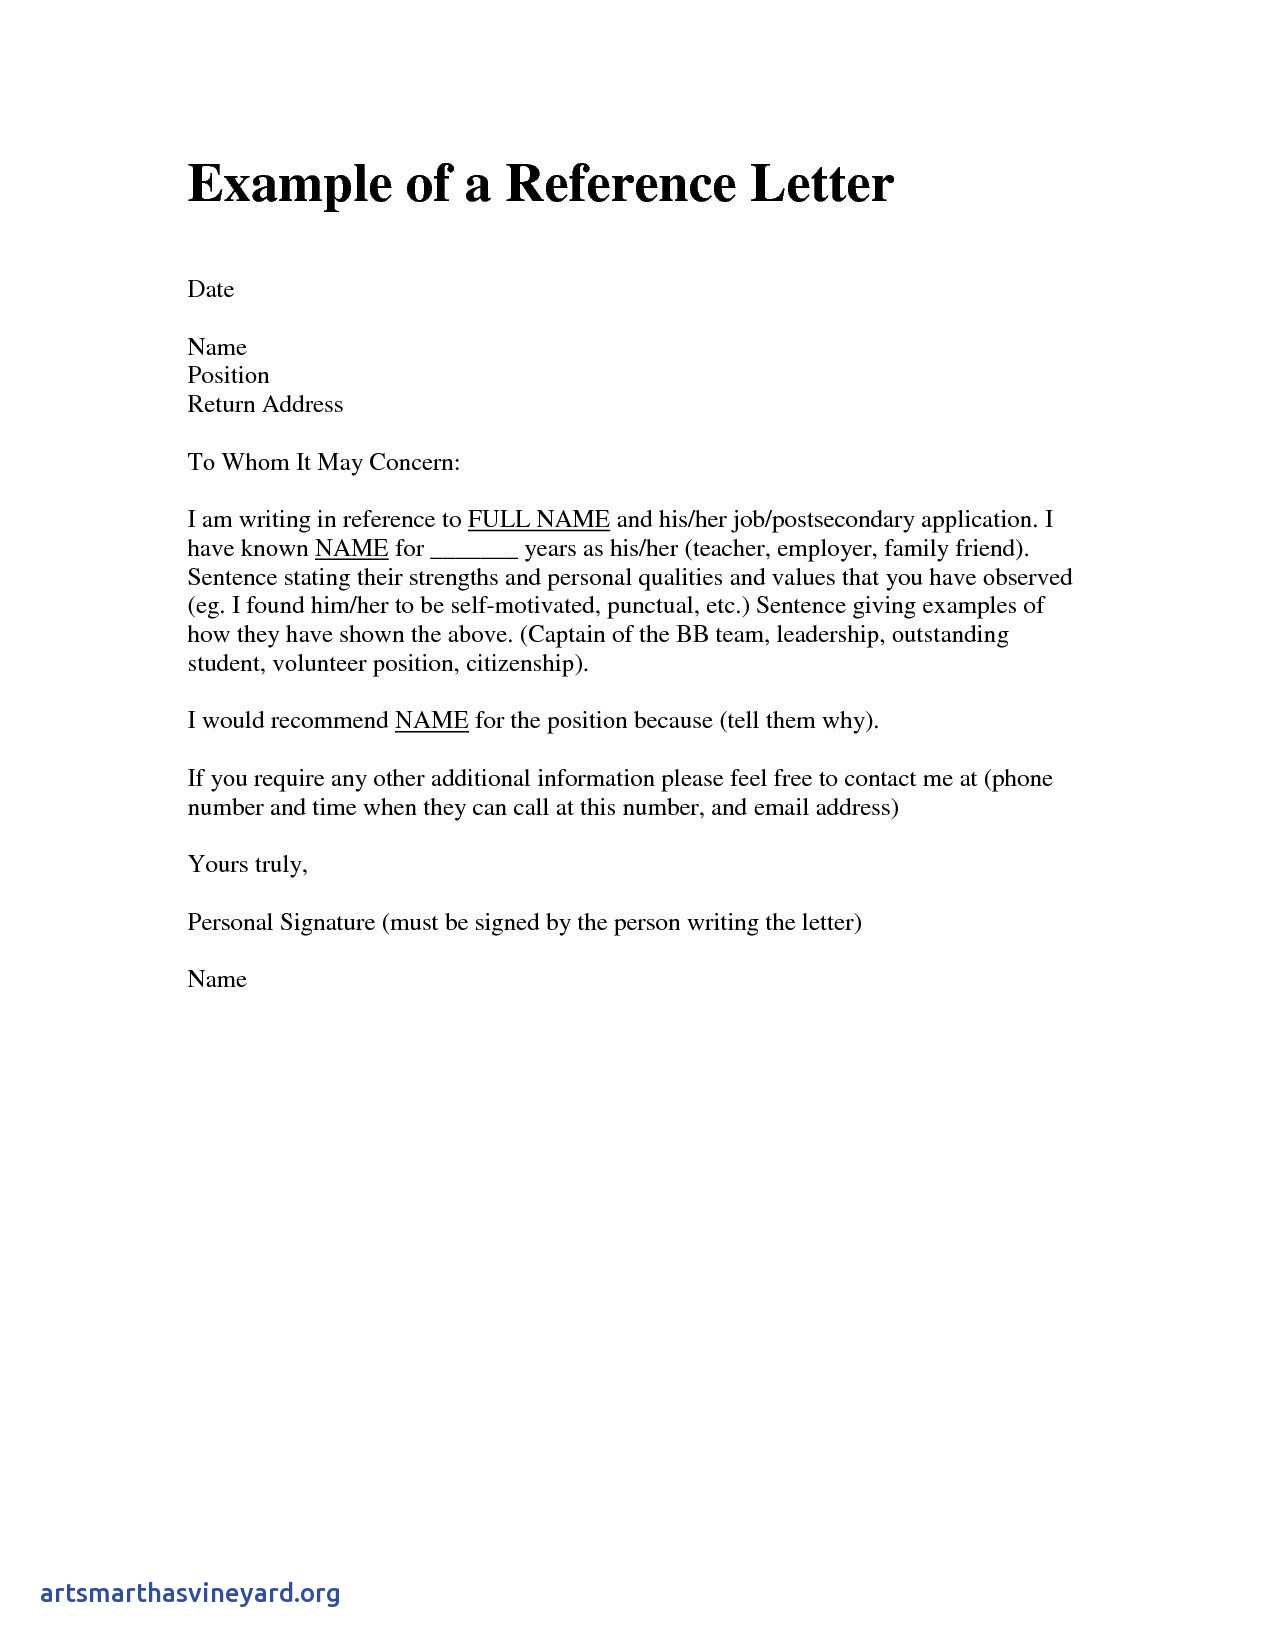 Sample Character Reference Letter for A Friend Template - Luxury Character Reference Letter for A Friend Sample Scheme Free